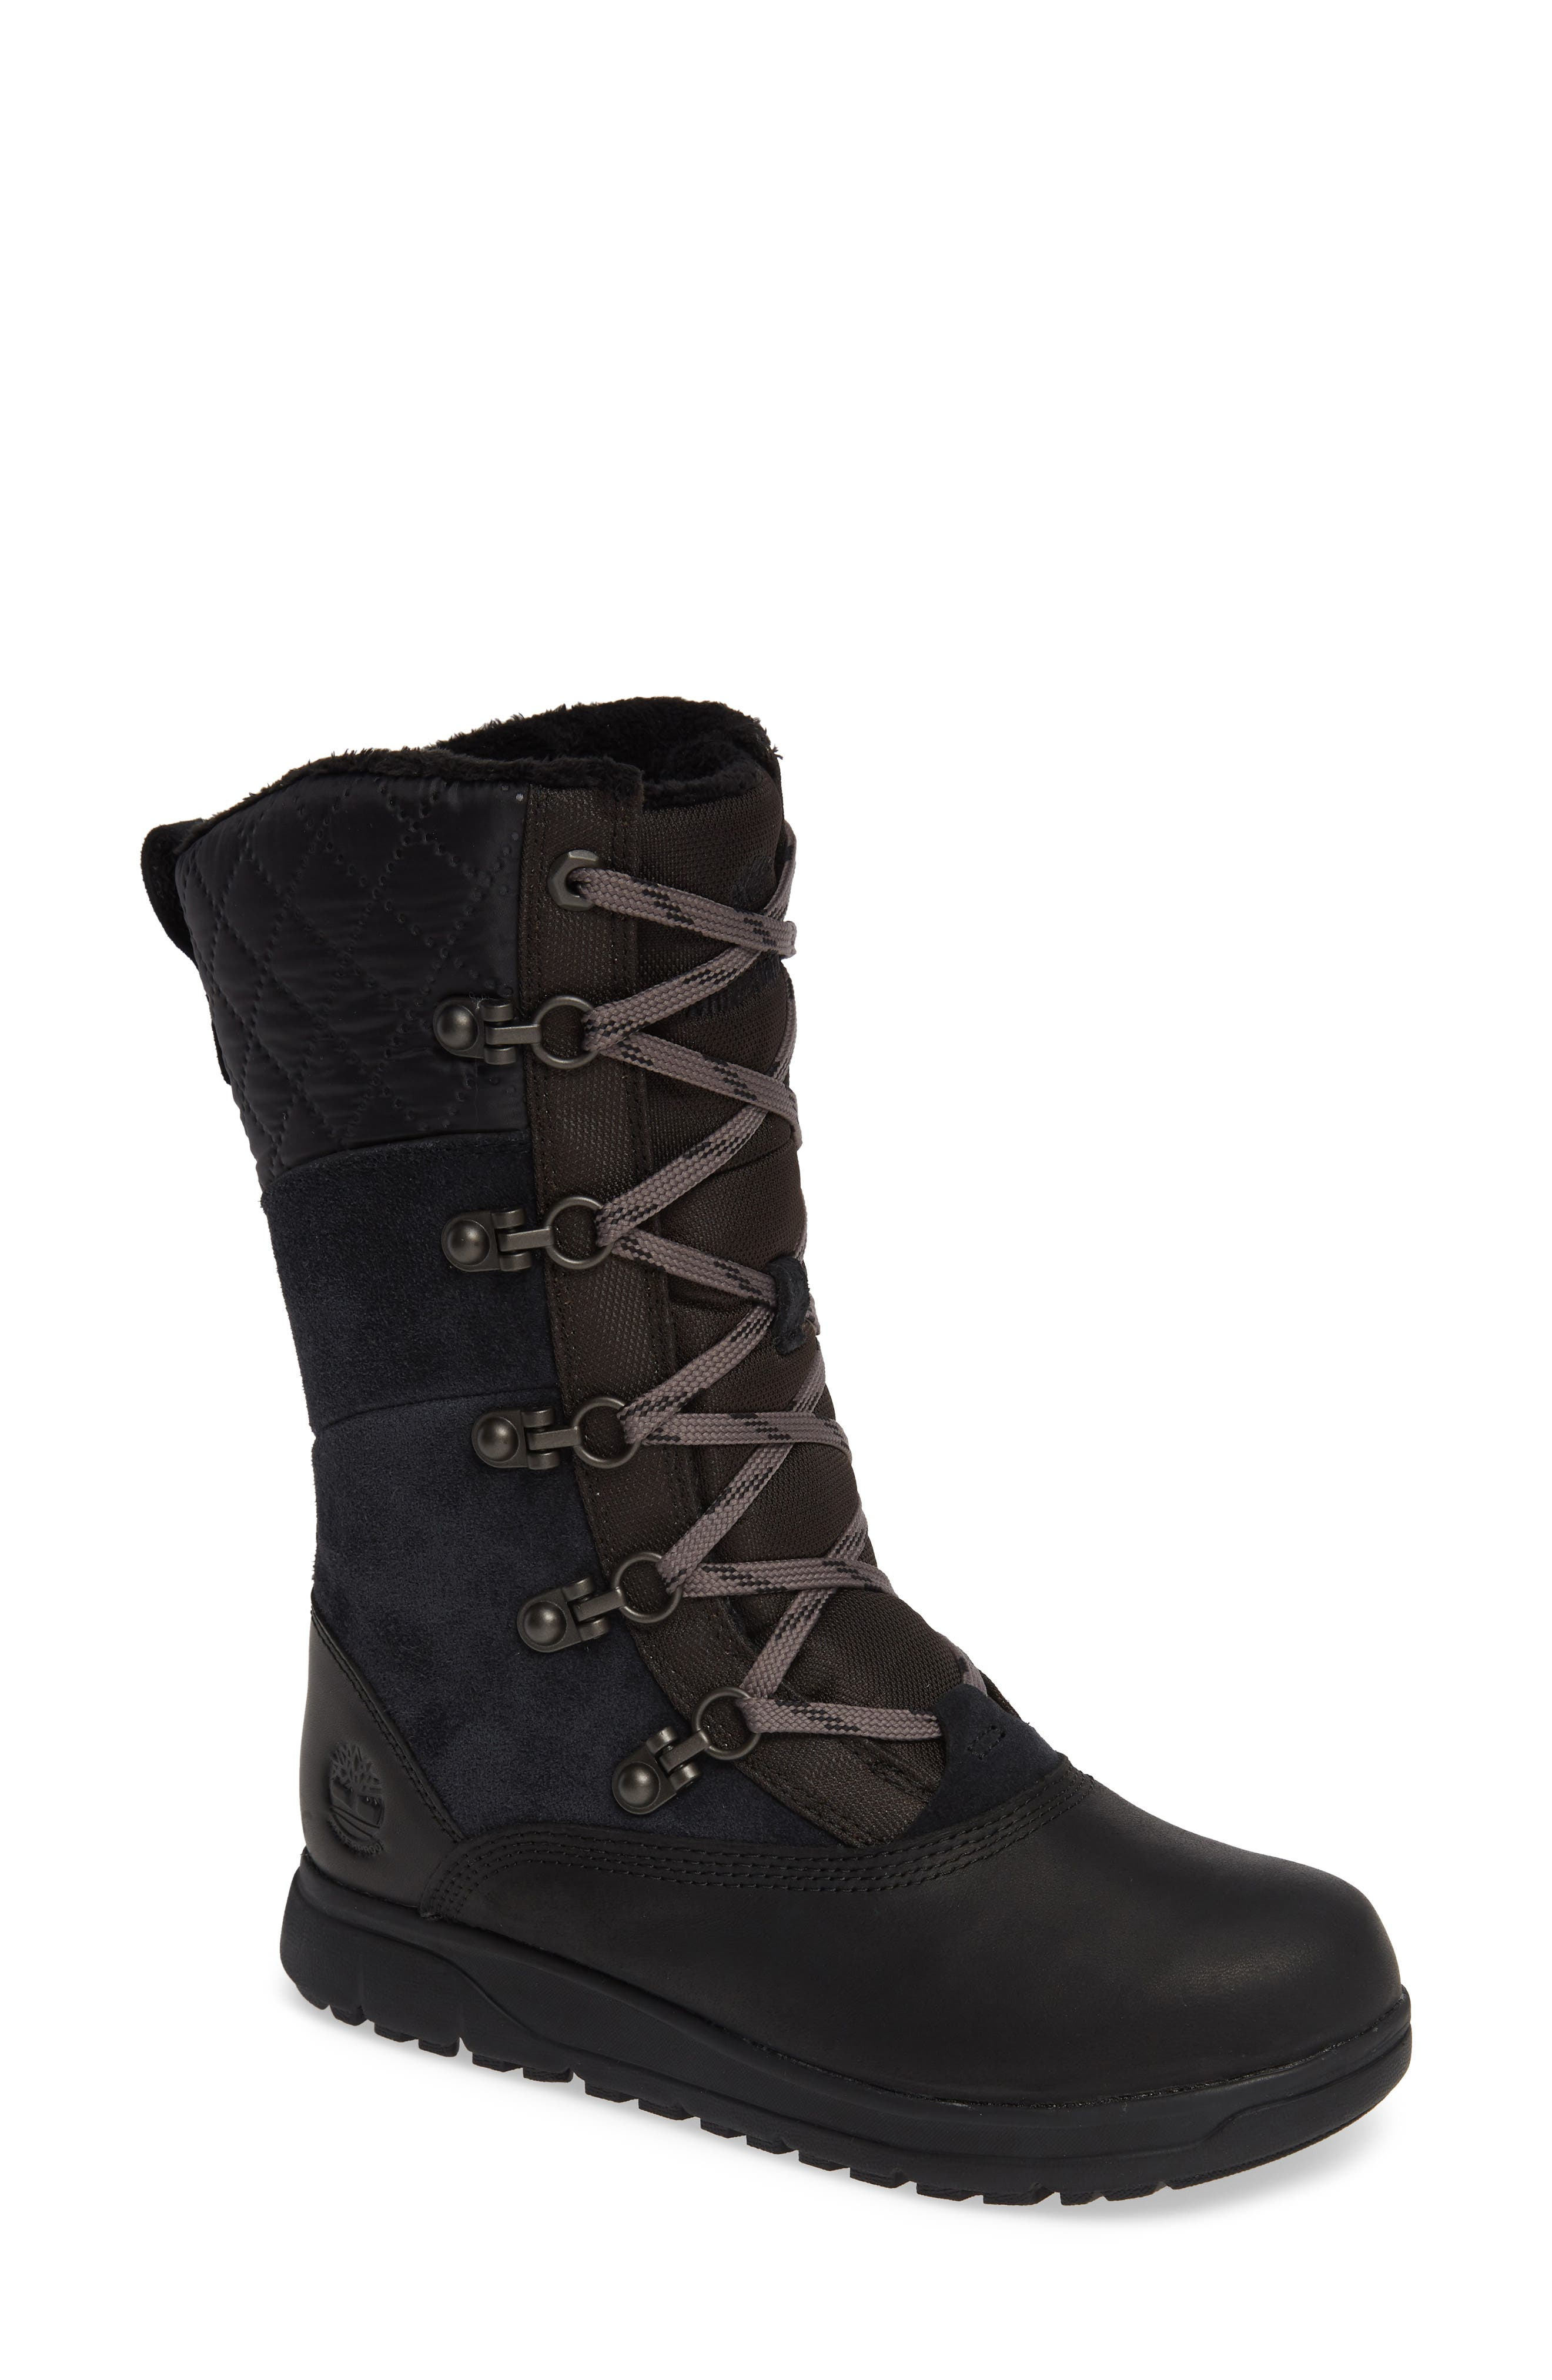 Haven Point Waterproof Boot,                             Main thumbnail 1, color,                             001